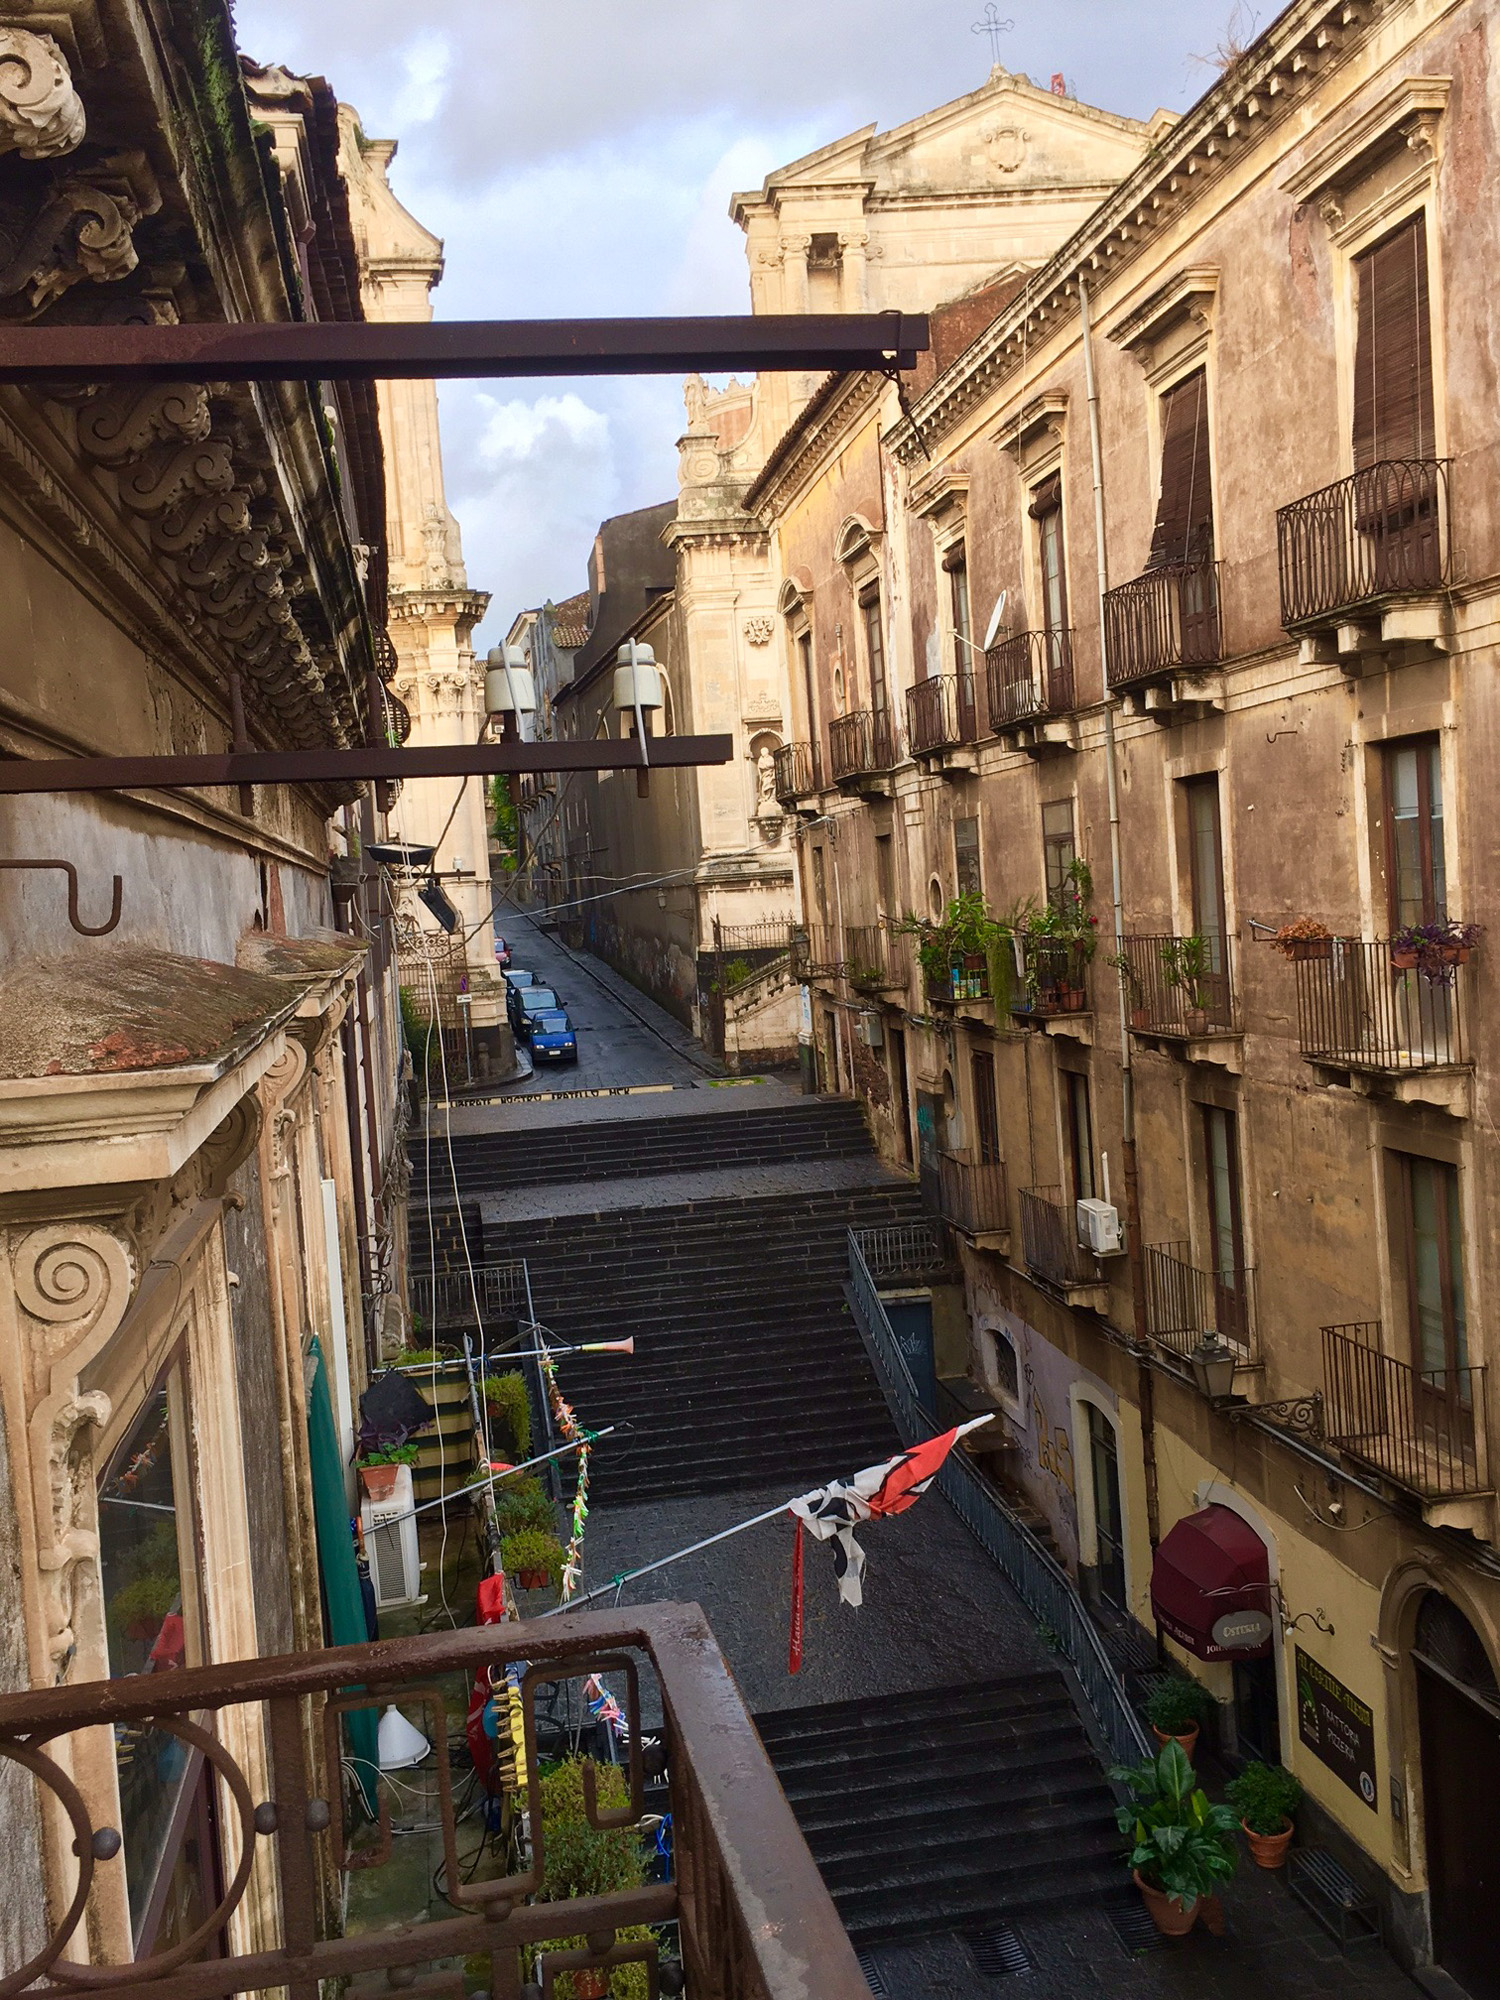 Room with a view from my balcony at Il Principe Hotel